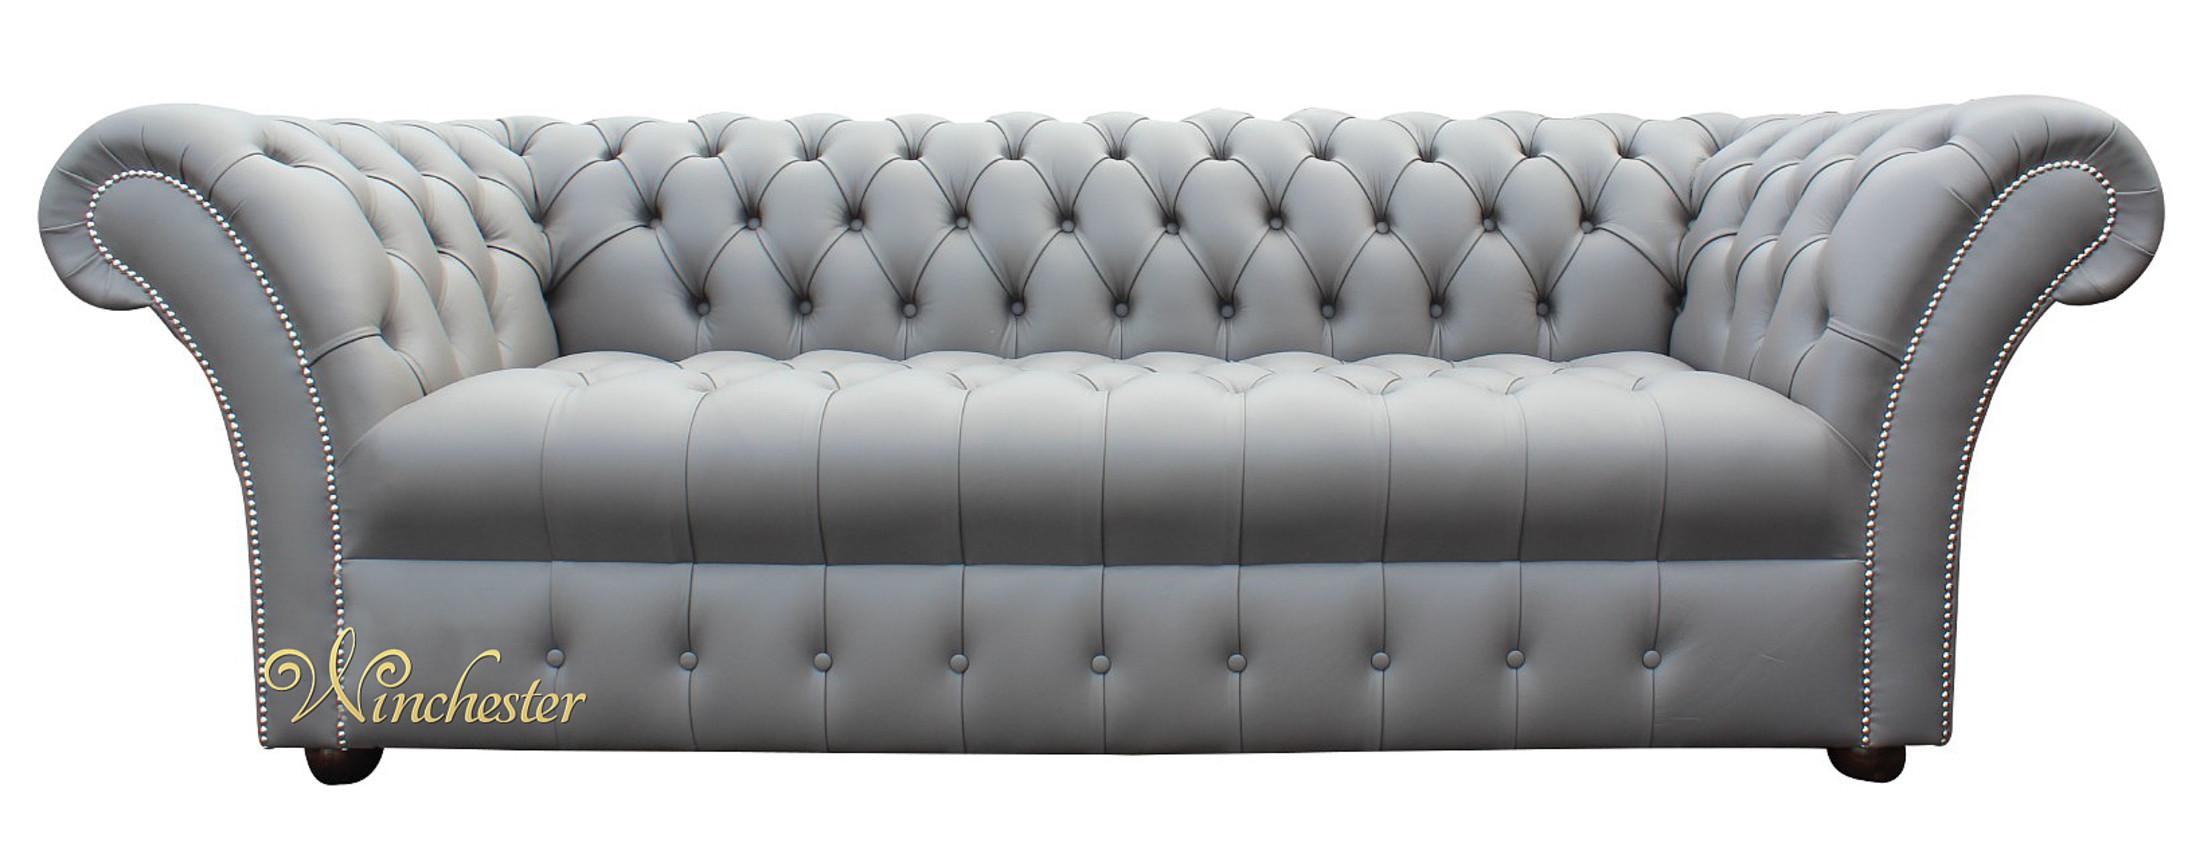 Delicieux ... Chesterfield Balmoral 3 Seater Sofa Settee Silver Birch